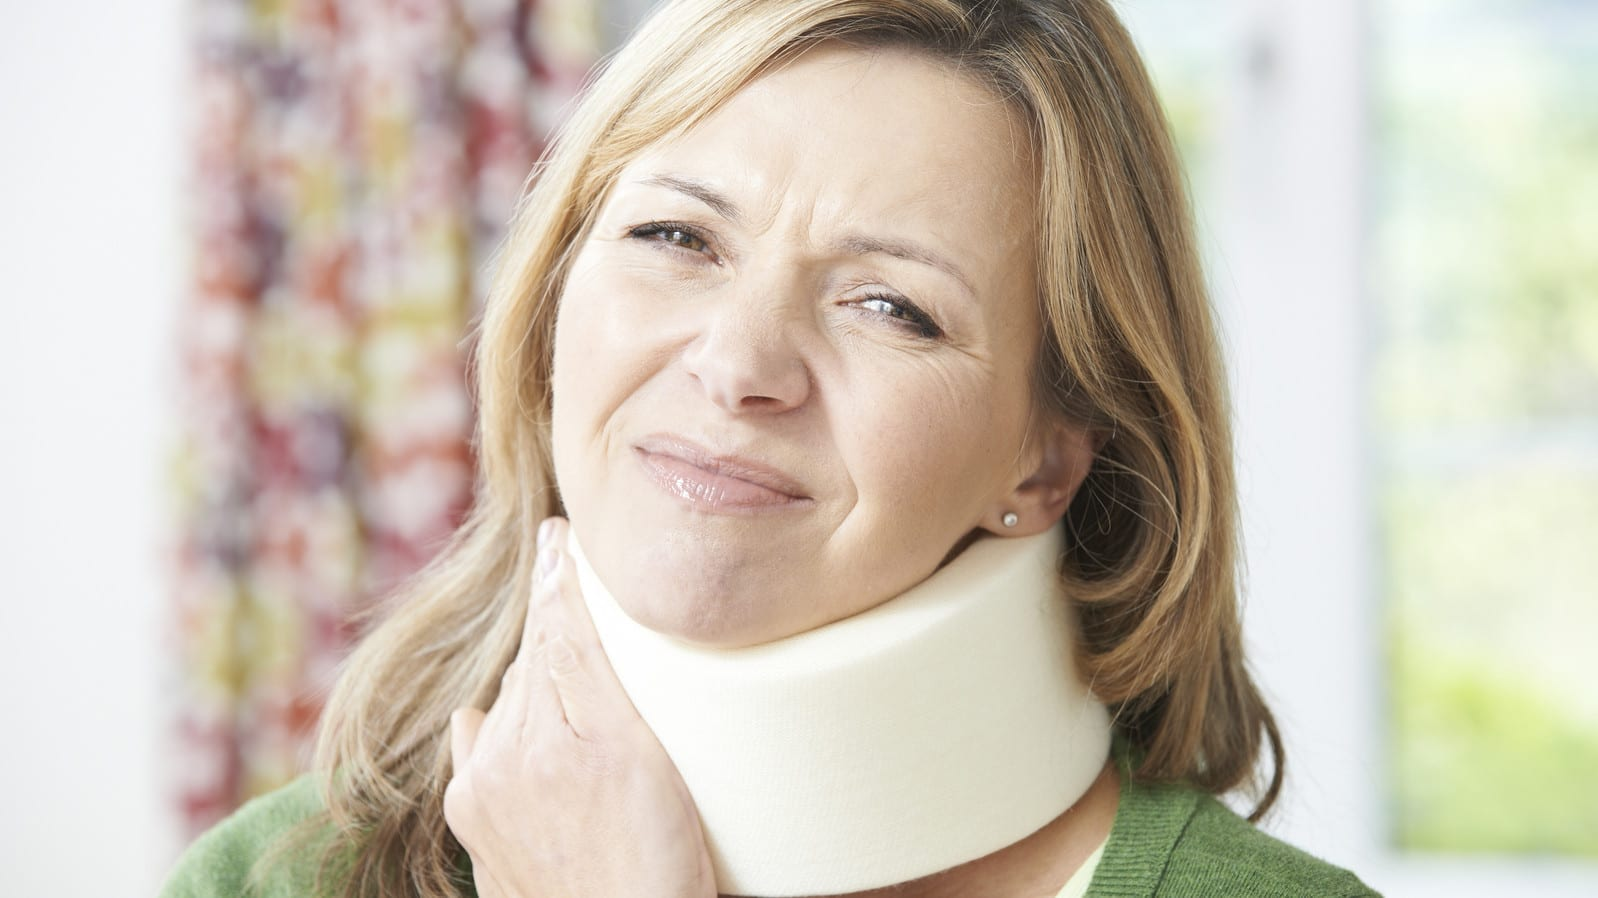 Mature Woman Experiencing Neck Pain Stock Photo